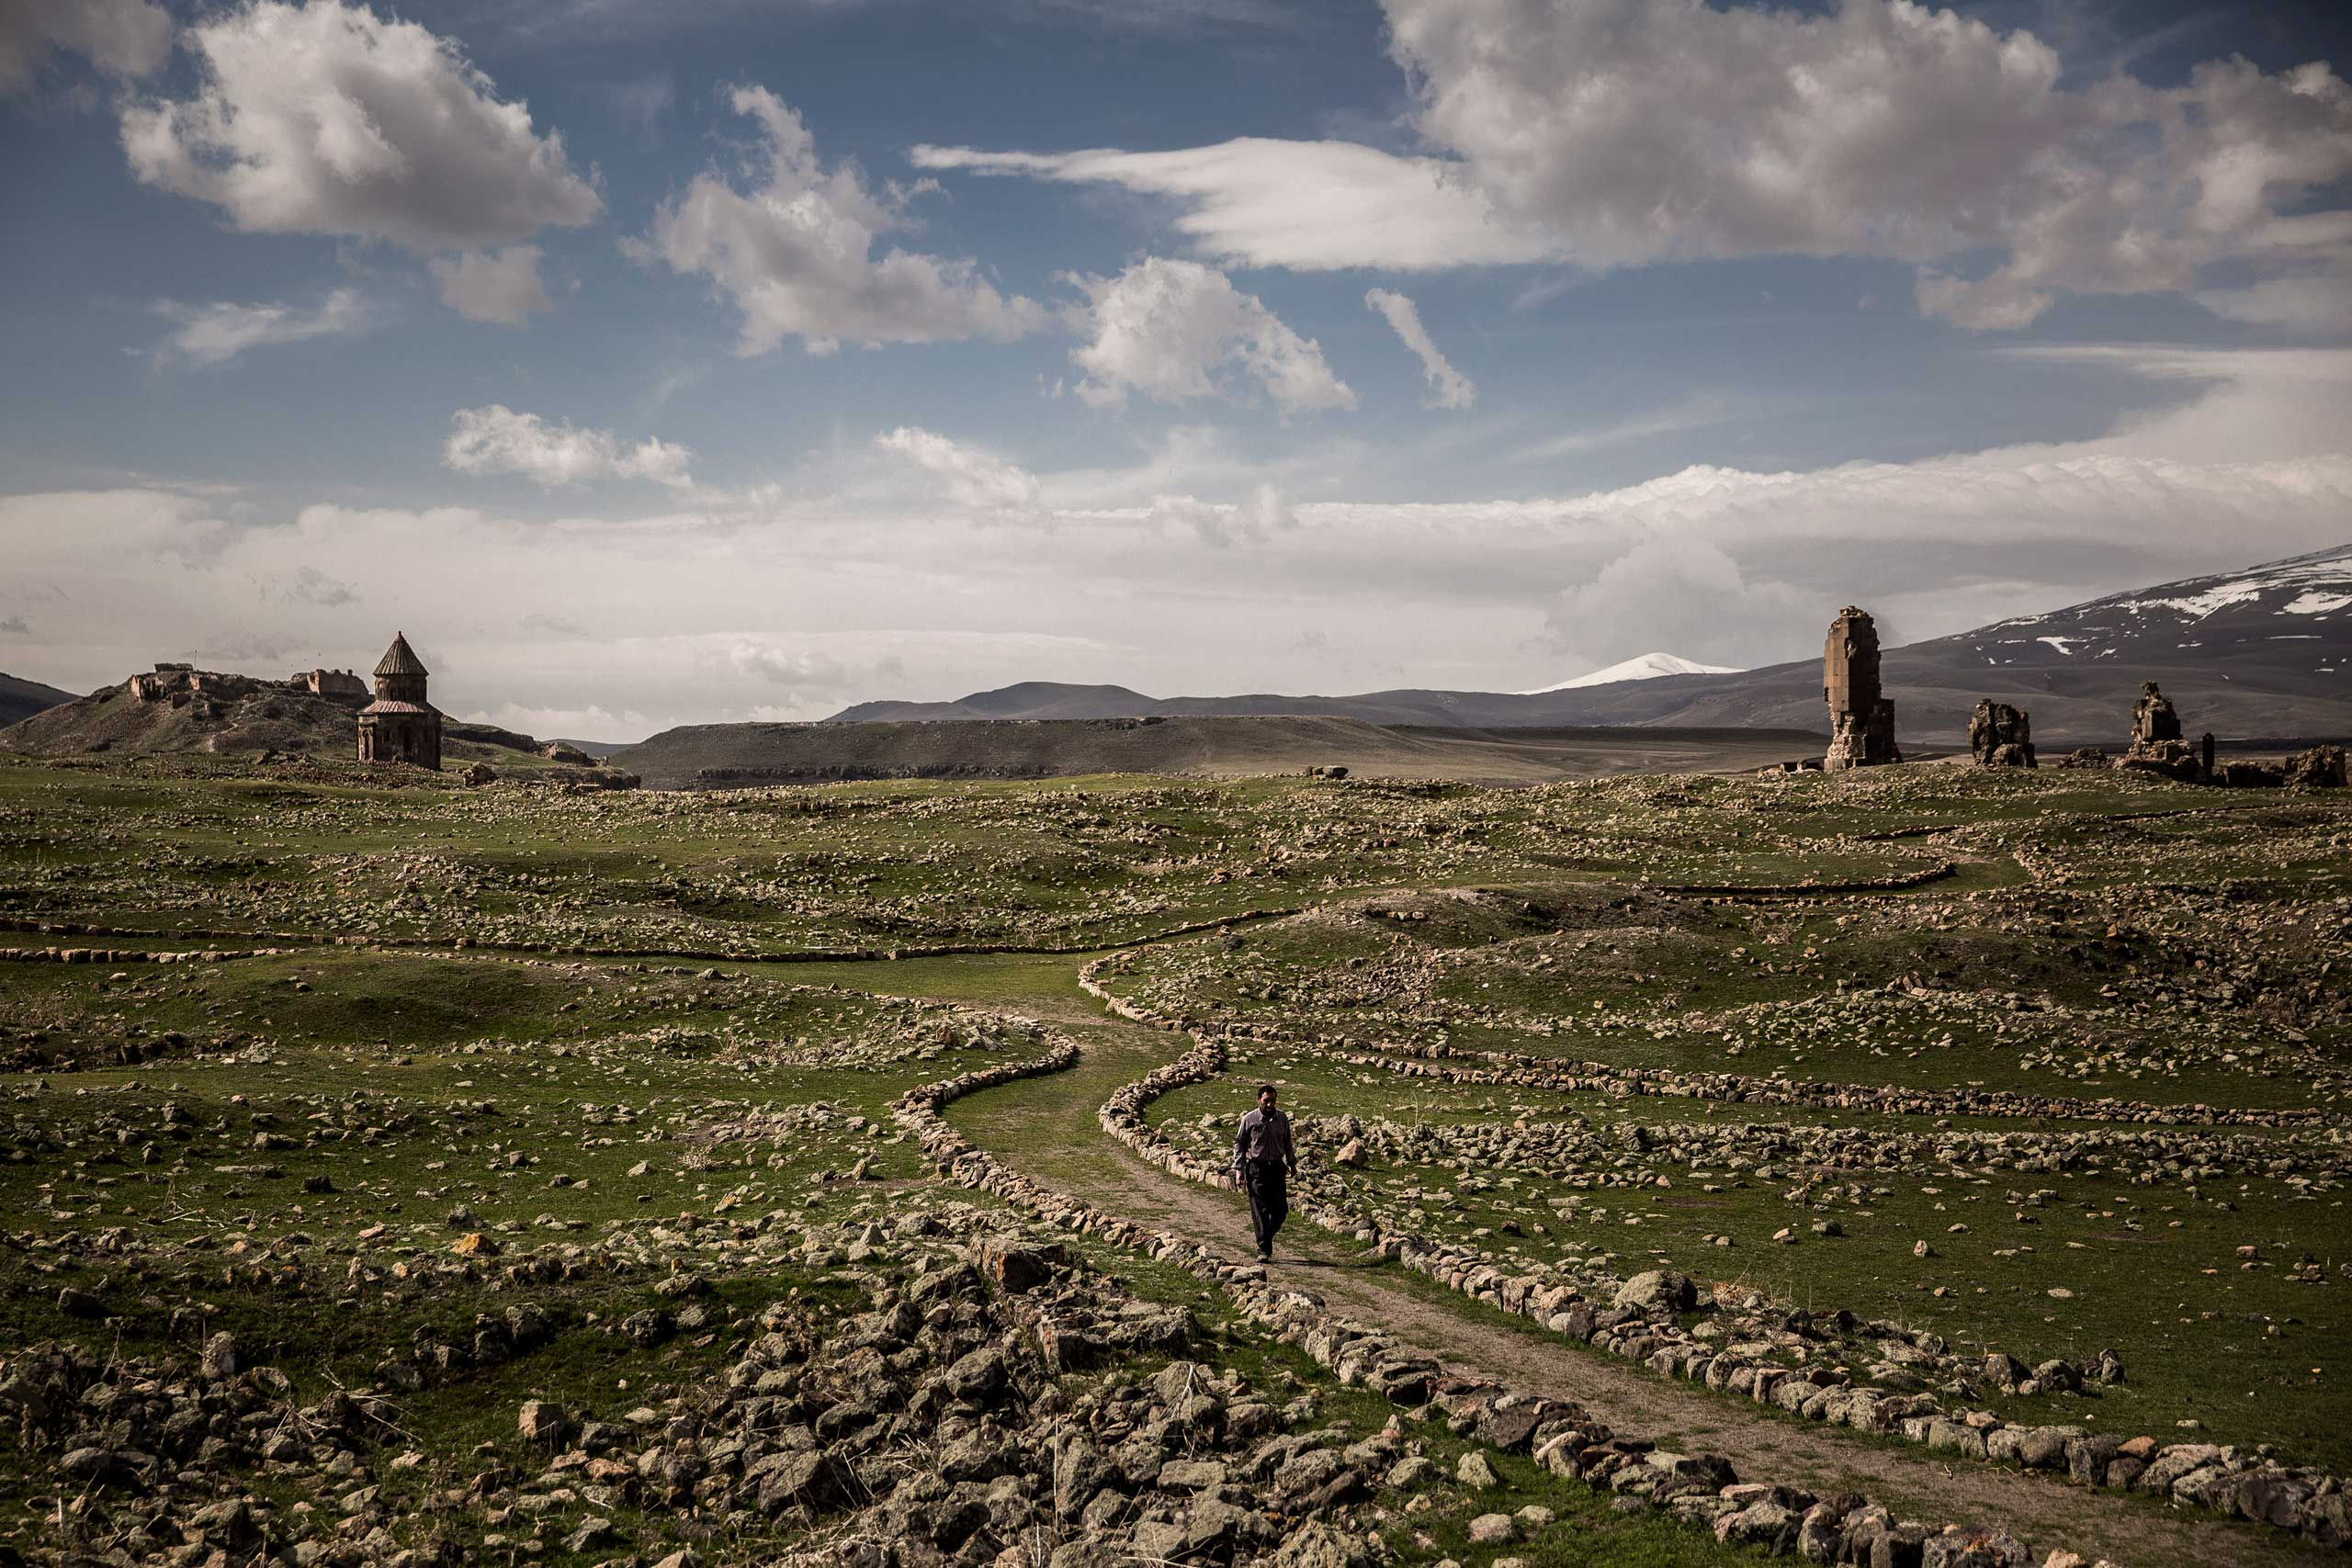 The New York Times: 100 Years Later, a Genocide Haunts the Armenian PsycheThe Ani ruins, once the capital of an Armenian kingdom that stretched from eastern Turkey into modern-day Armenia, in Ani, Turkey, April 8, 2015.